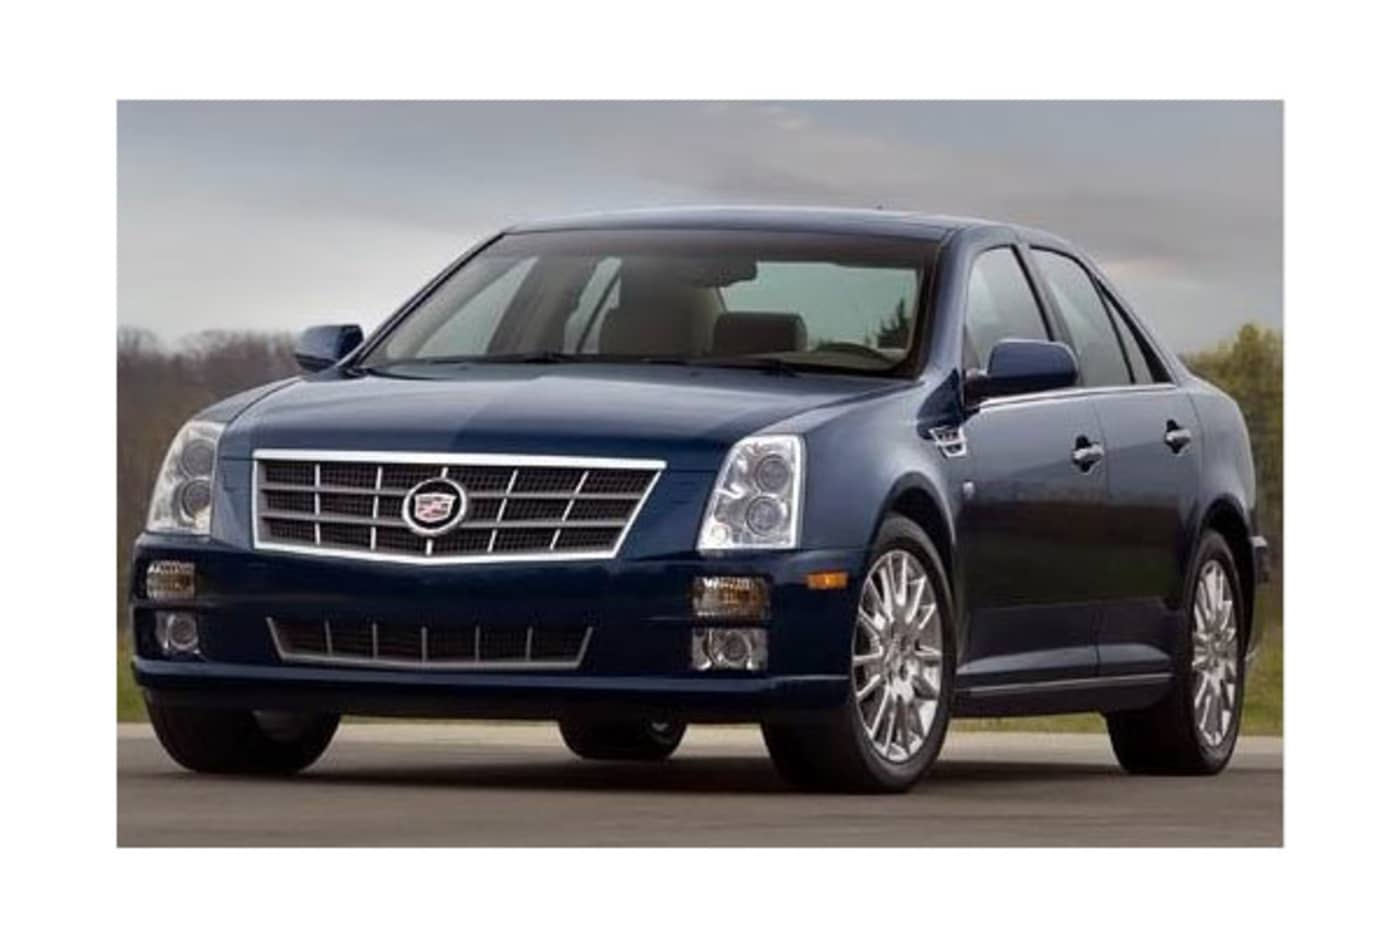 48438685 Cadillac-STS-Most-Stolen-Luxury-Cars-CNBC.jpg